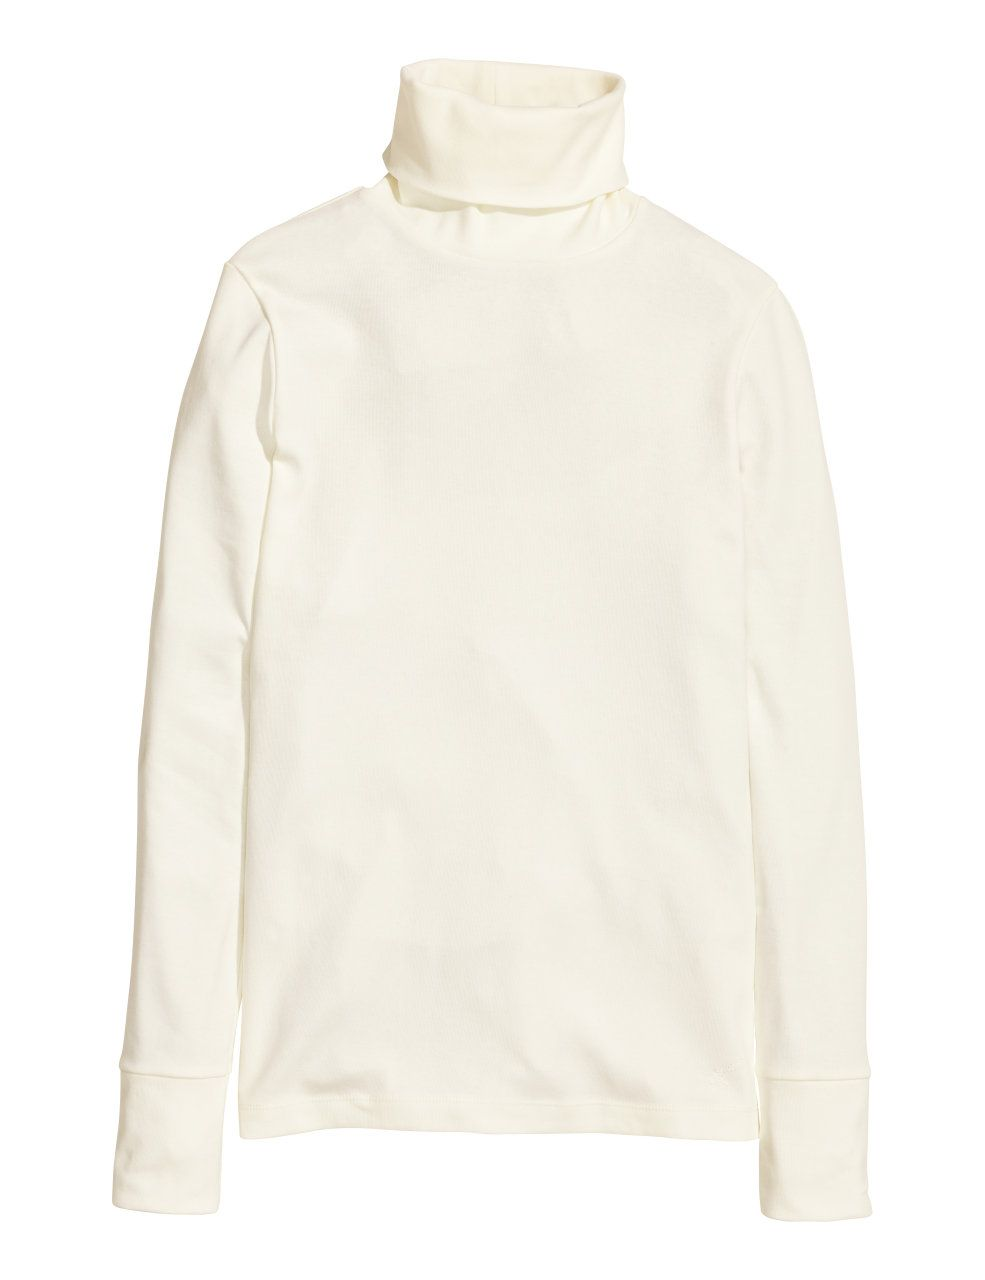 070f3f279 H&M - A/W15 - Concious - Long-sleeved polo-neck top in soft organic cotton  jersey with ribbed cuffs - White